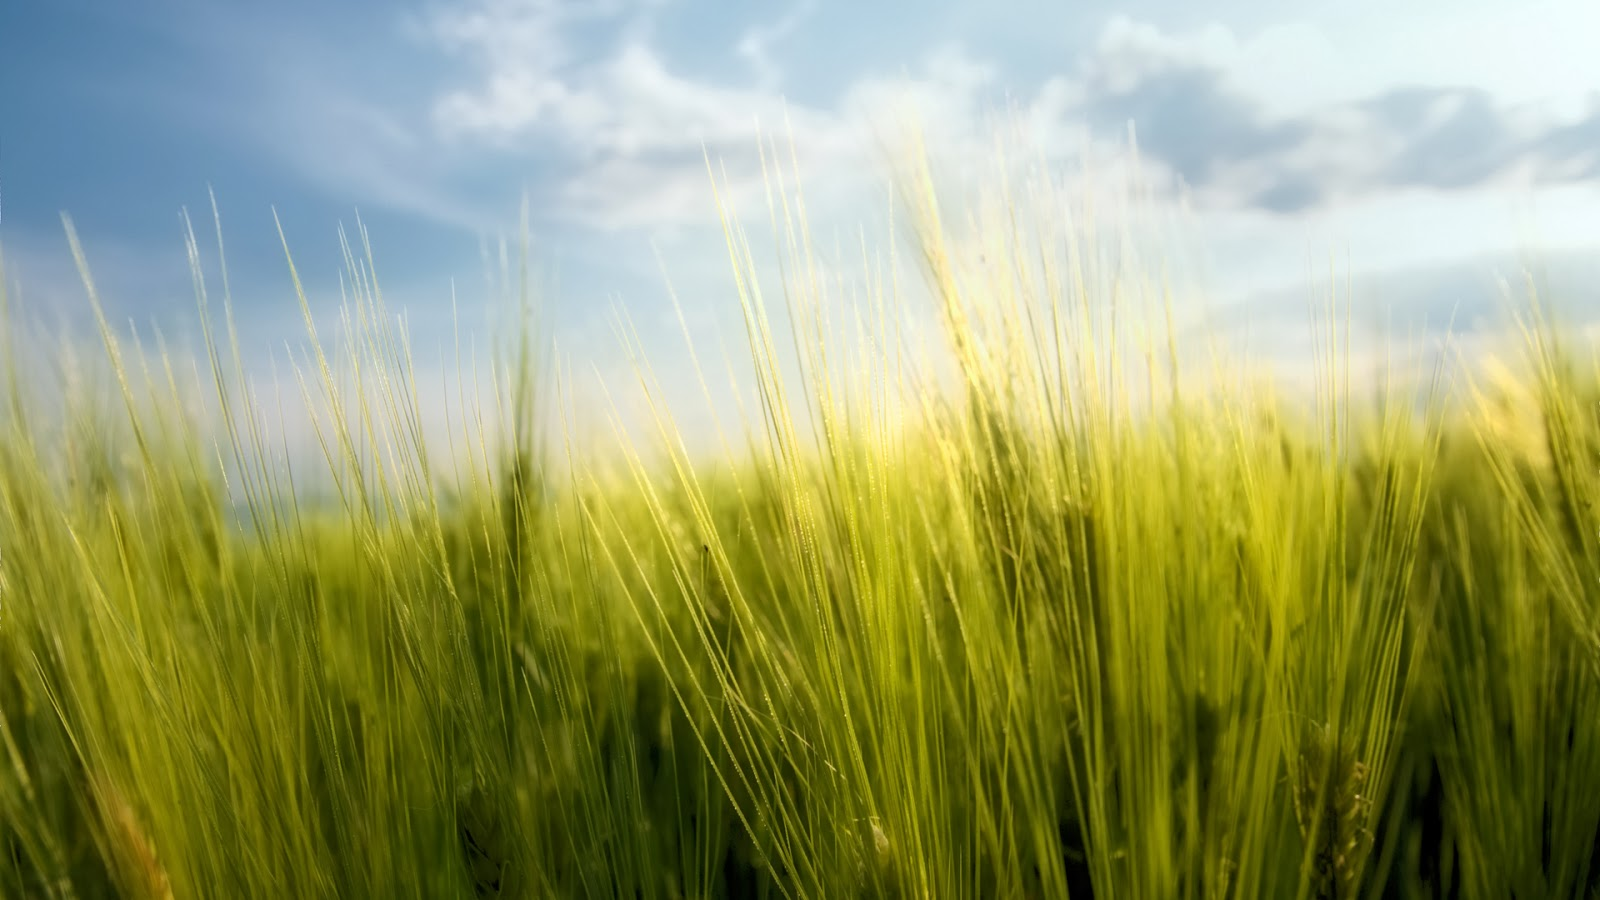 Wheat wallpaper - beautiful desktop wallpapers 2014